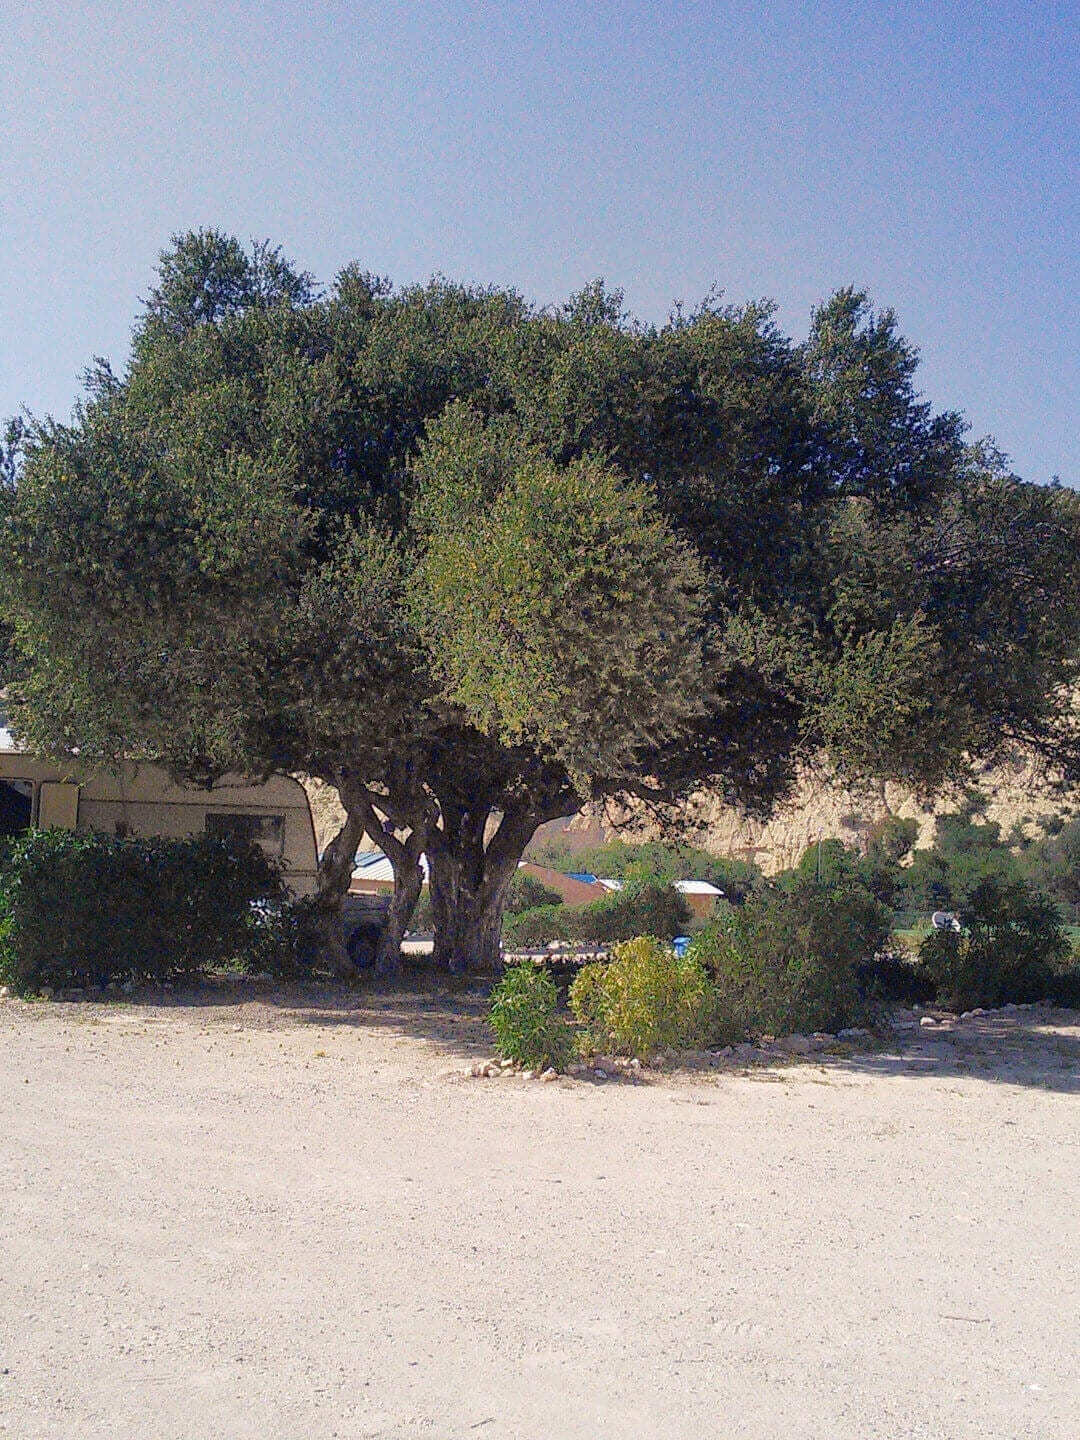 Camping Aourir – Camping Pitch at the Campsite in Aourir with an big Argan Tree